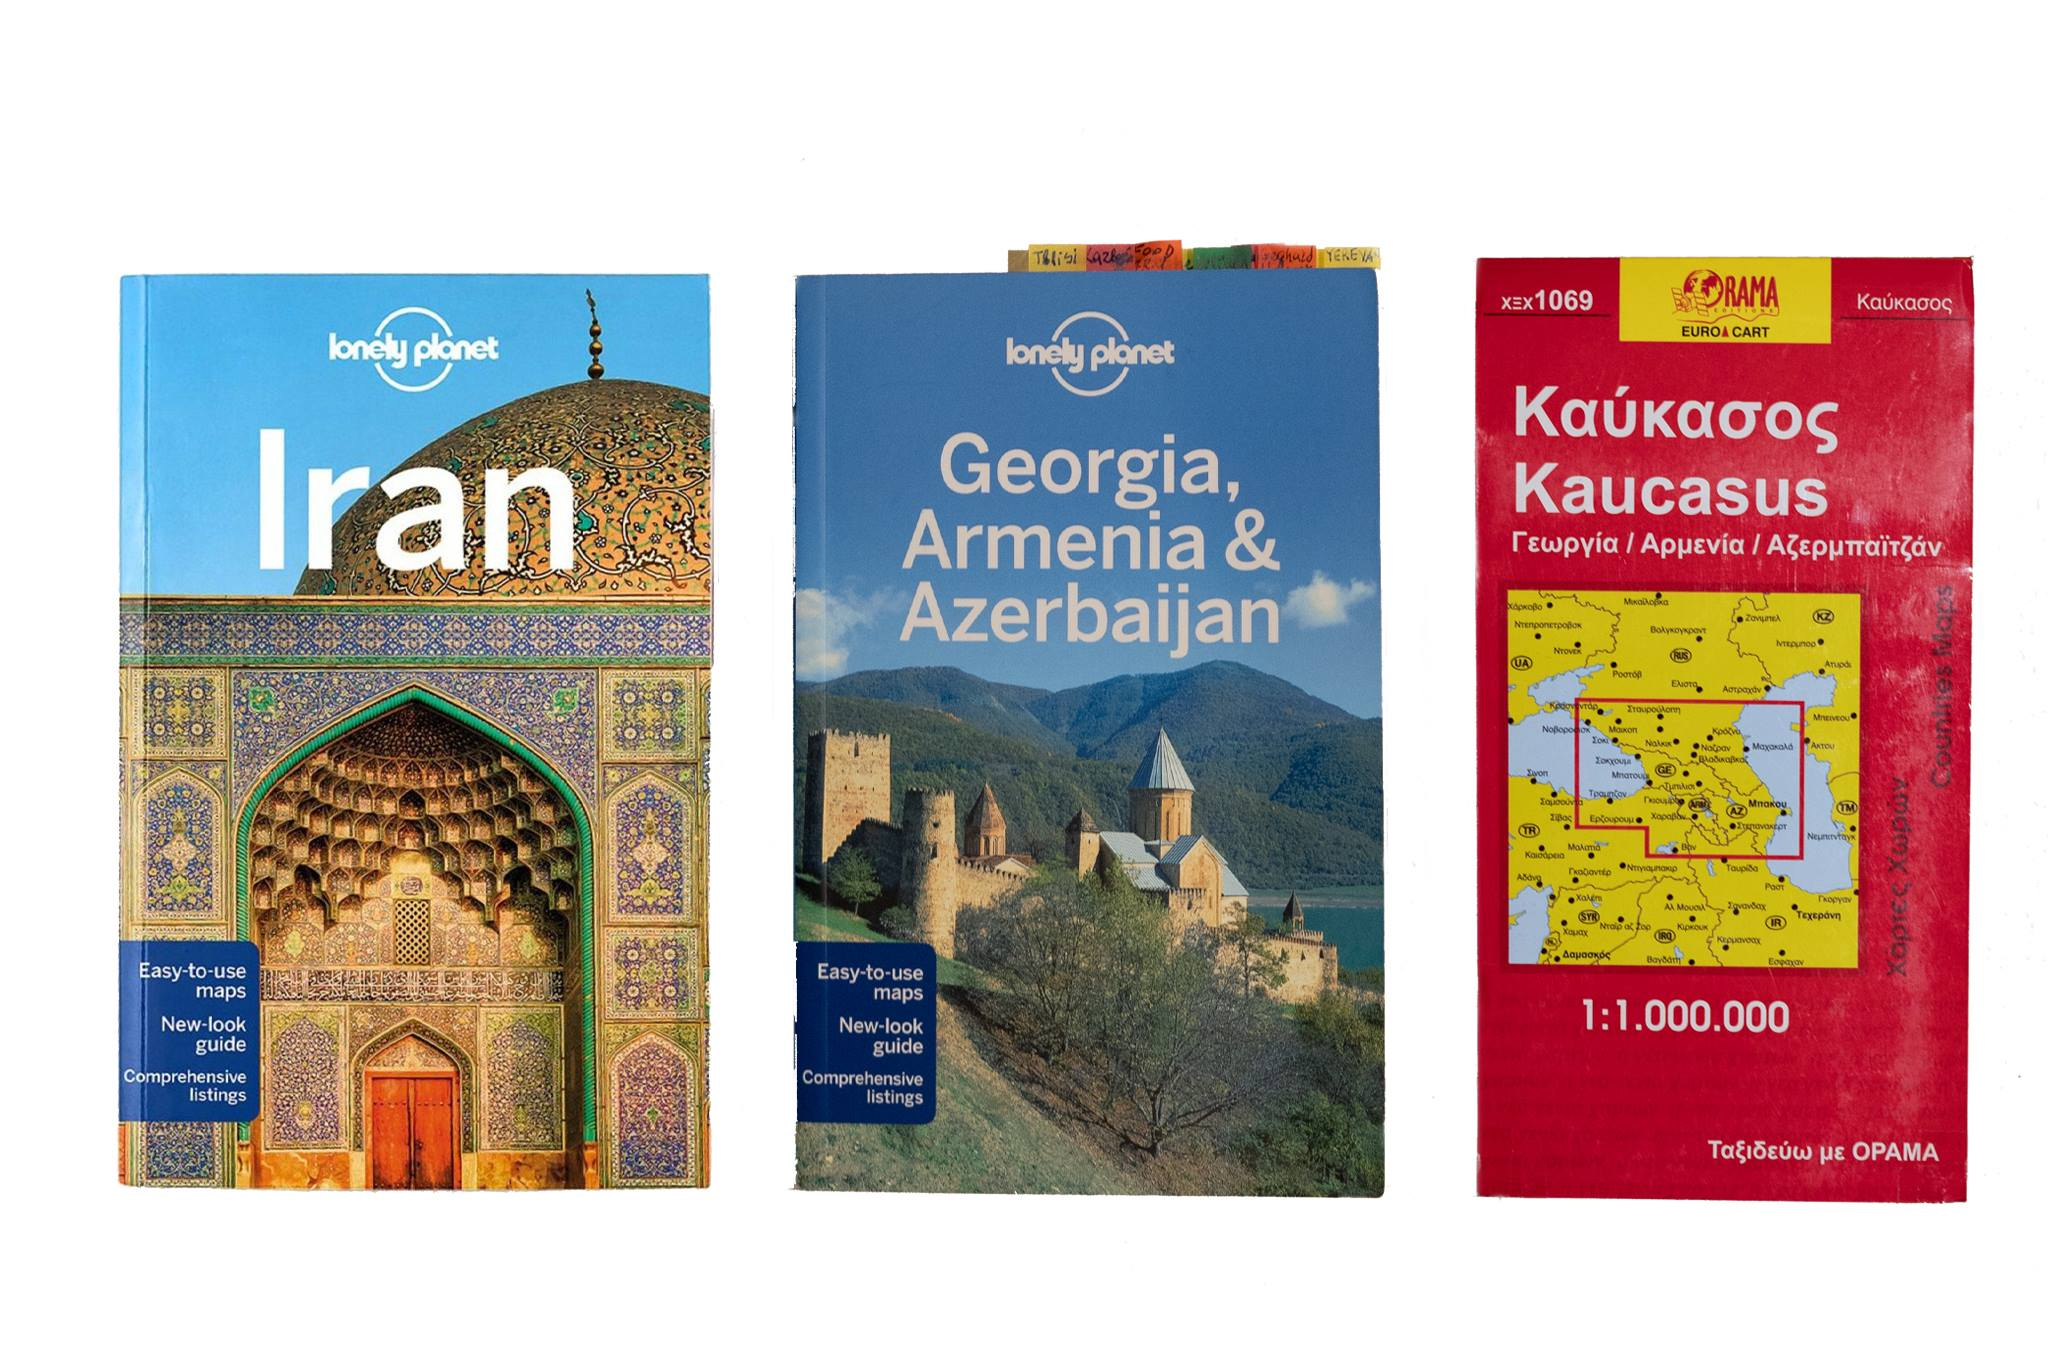 Iran book and map photo